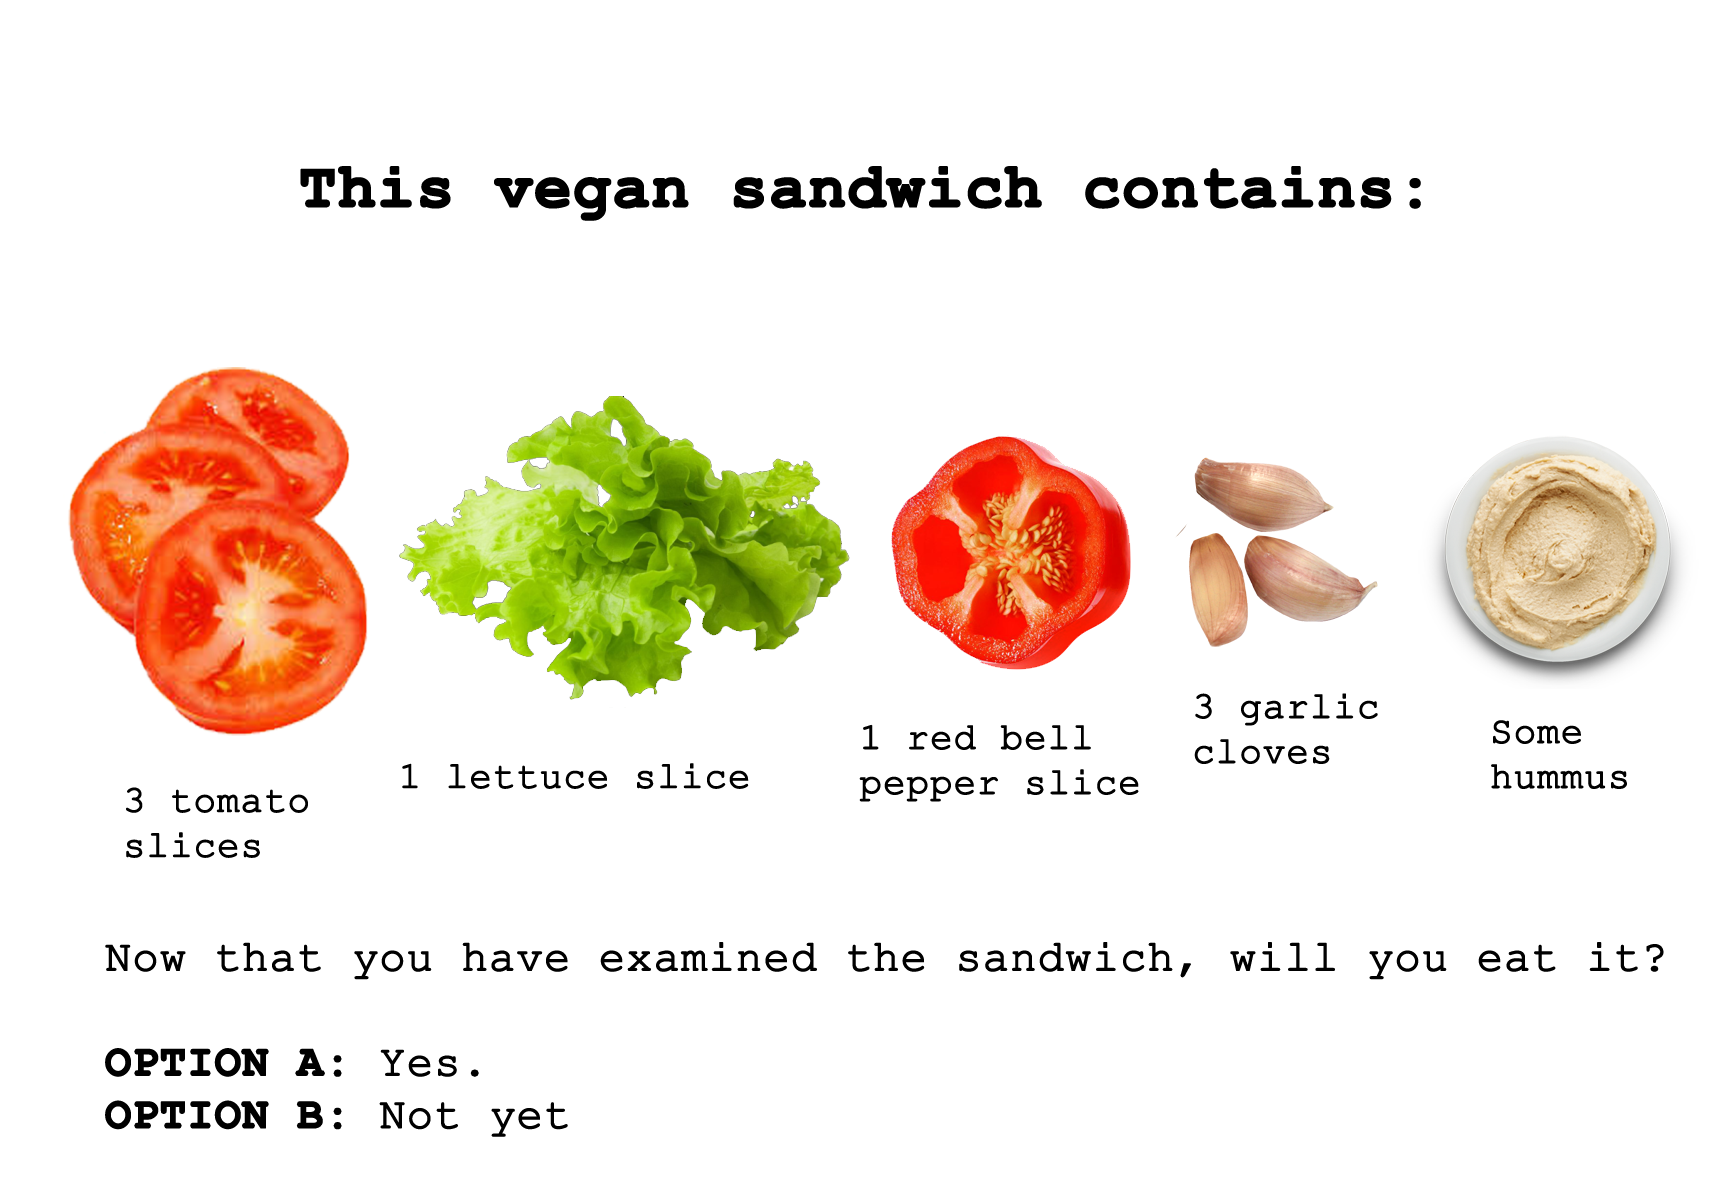 Jack examines the vegan sandwich